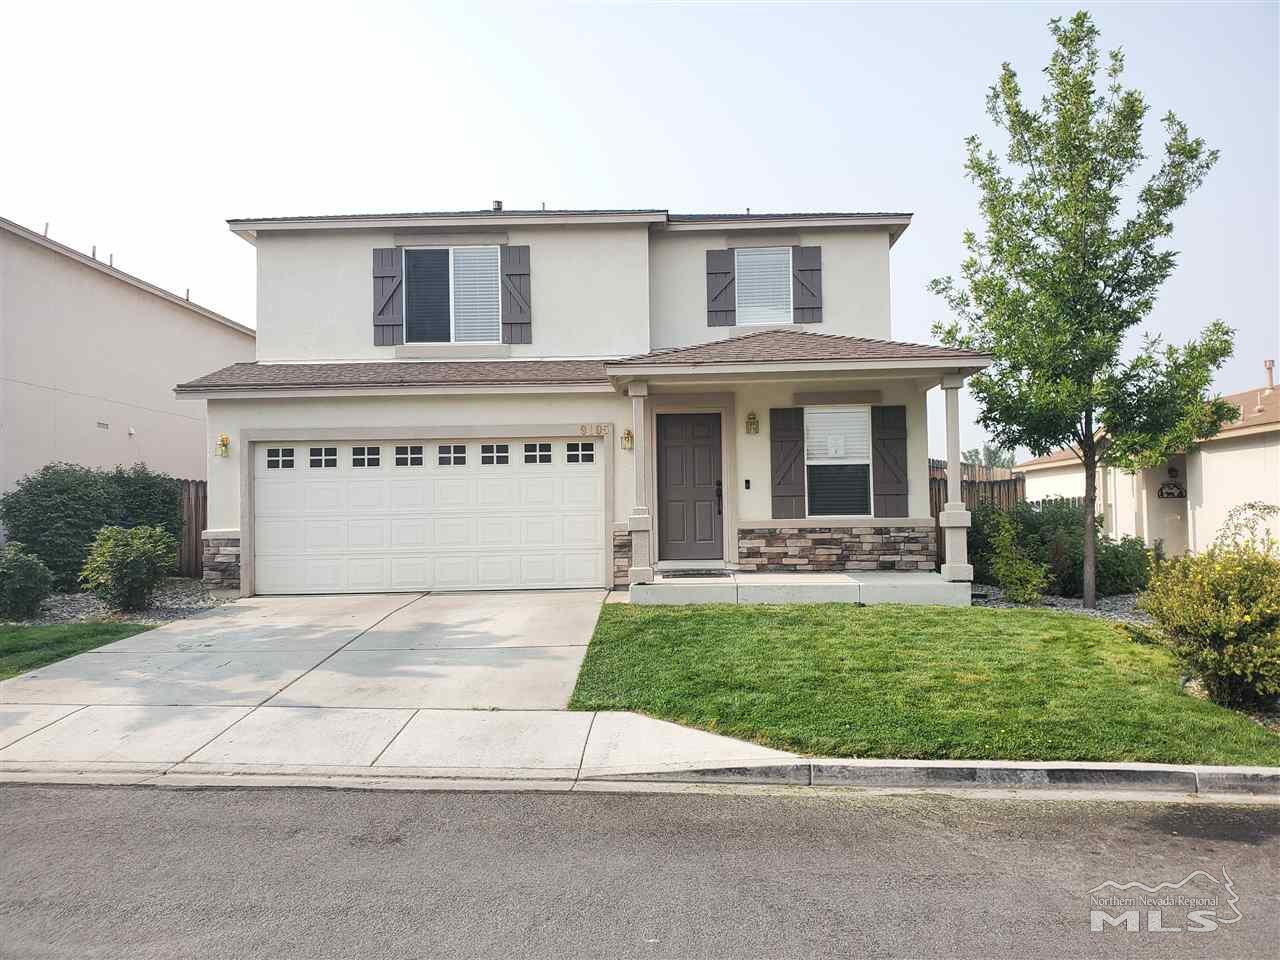 Image for 9195 Red Baron Blvd., Reno, NV 89506